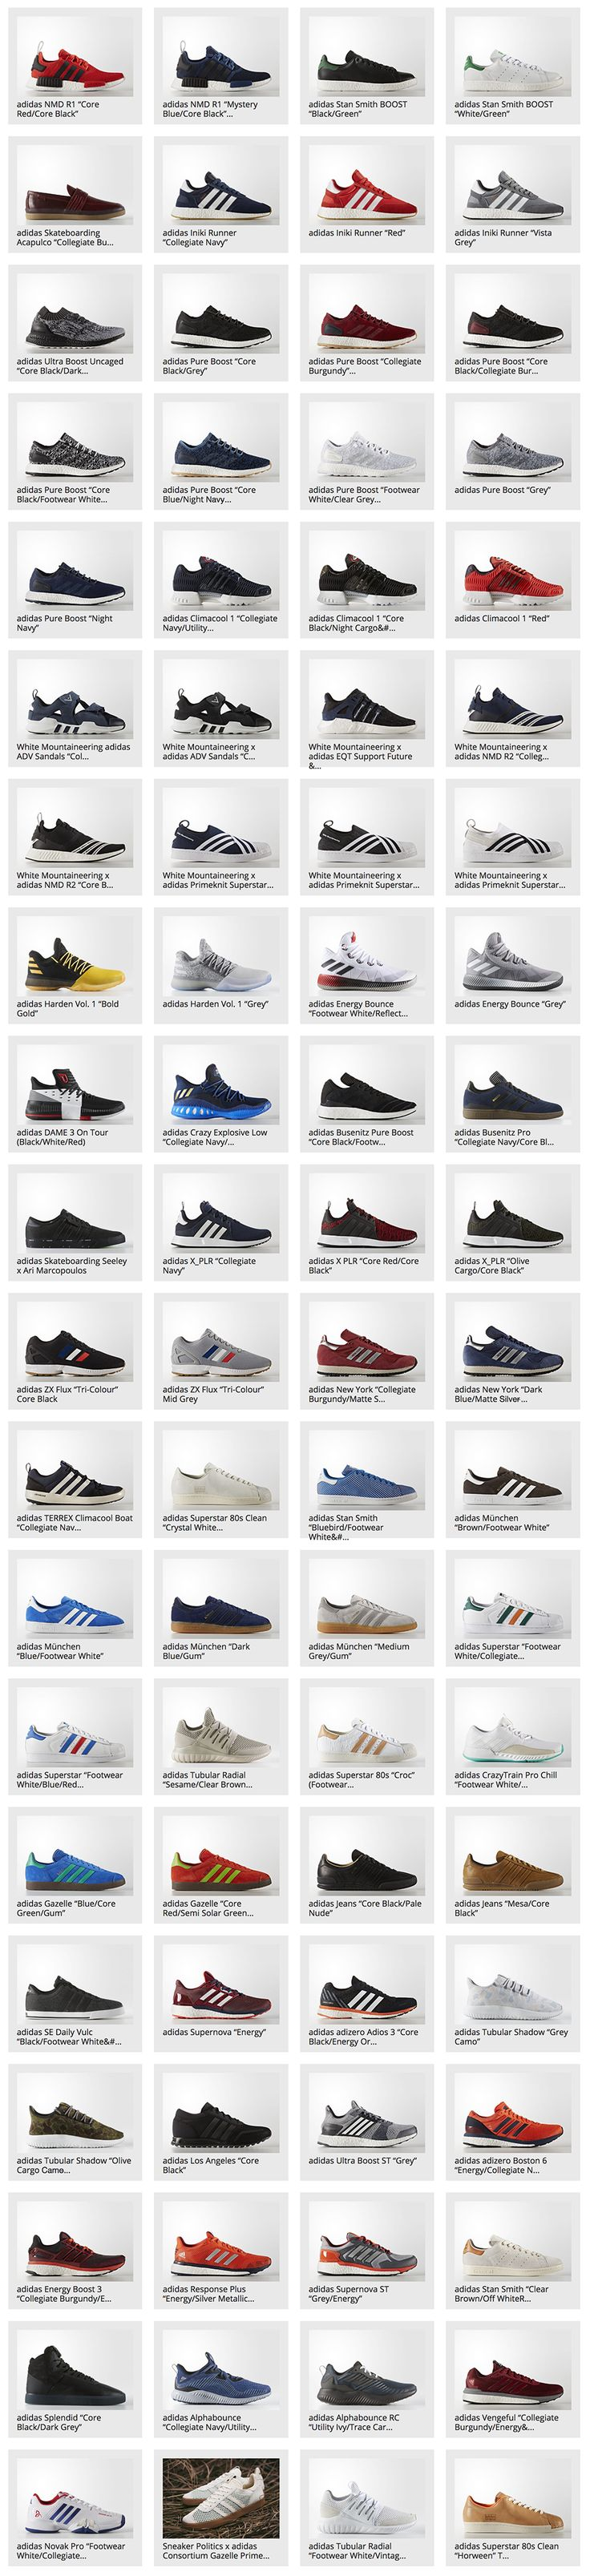 80 adidas Sneakers That Released for the 9th Week of 2017 - EU Kicks: Sneaker Magazine